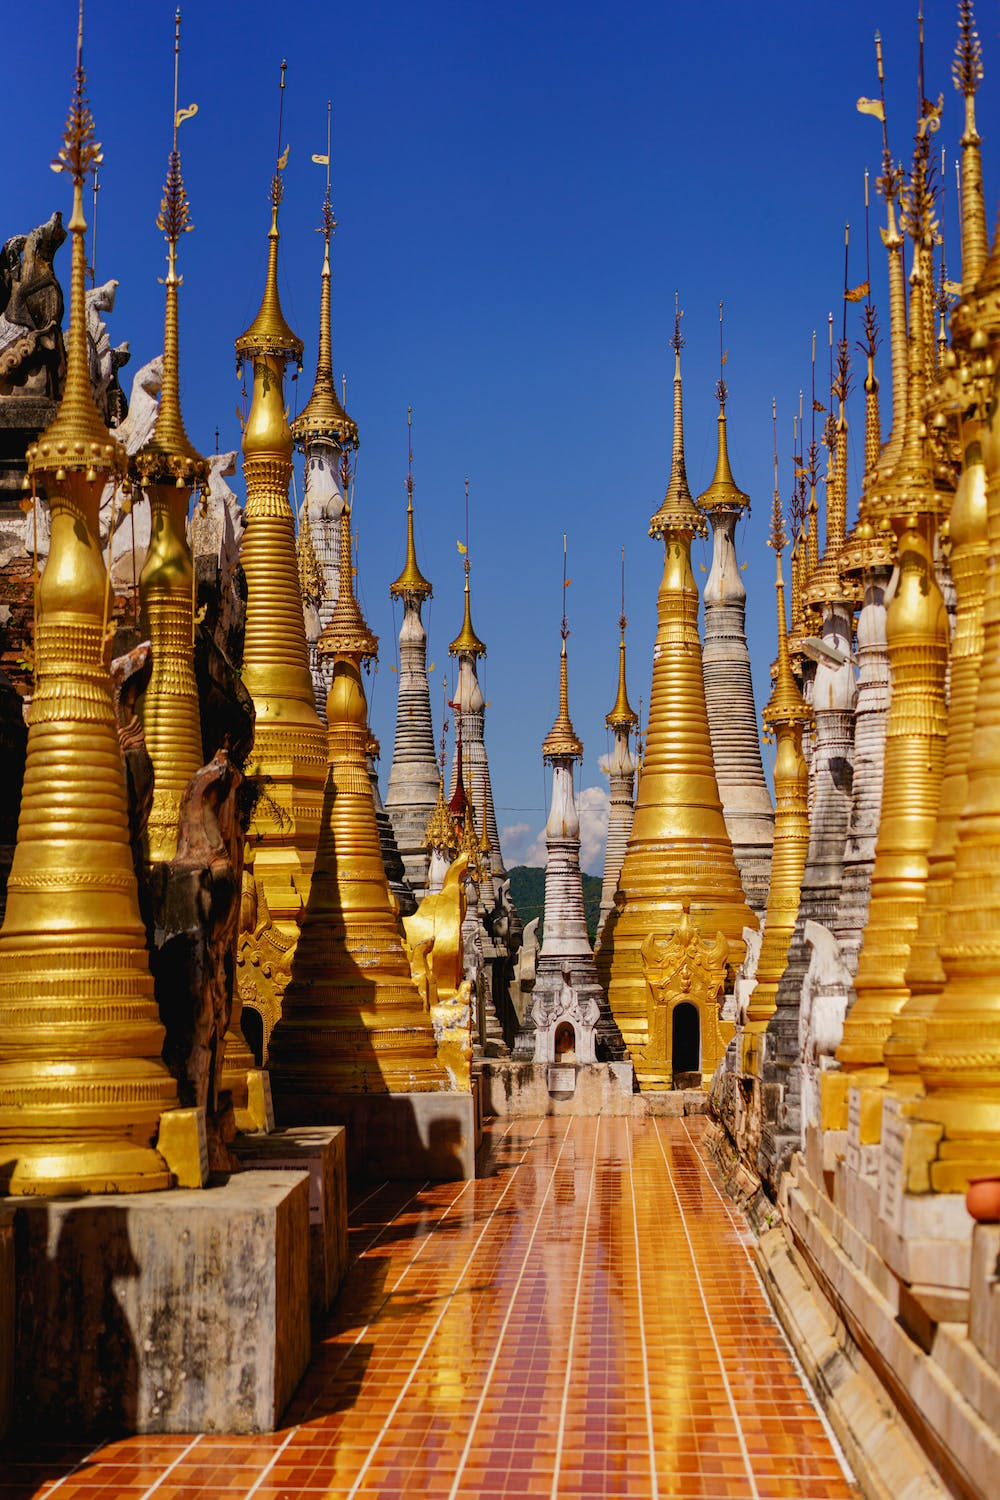 Gold stupas at the Indein Pagoda on a sunny clear day at the village Buddhist temple